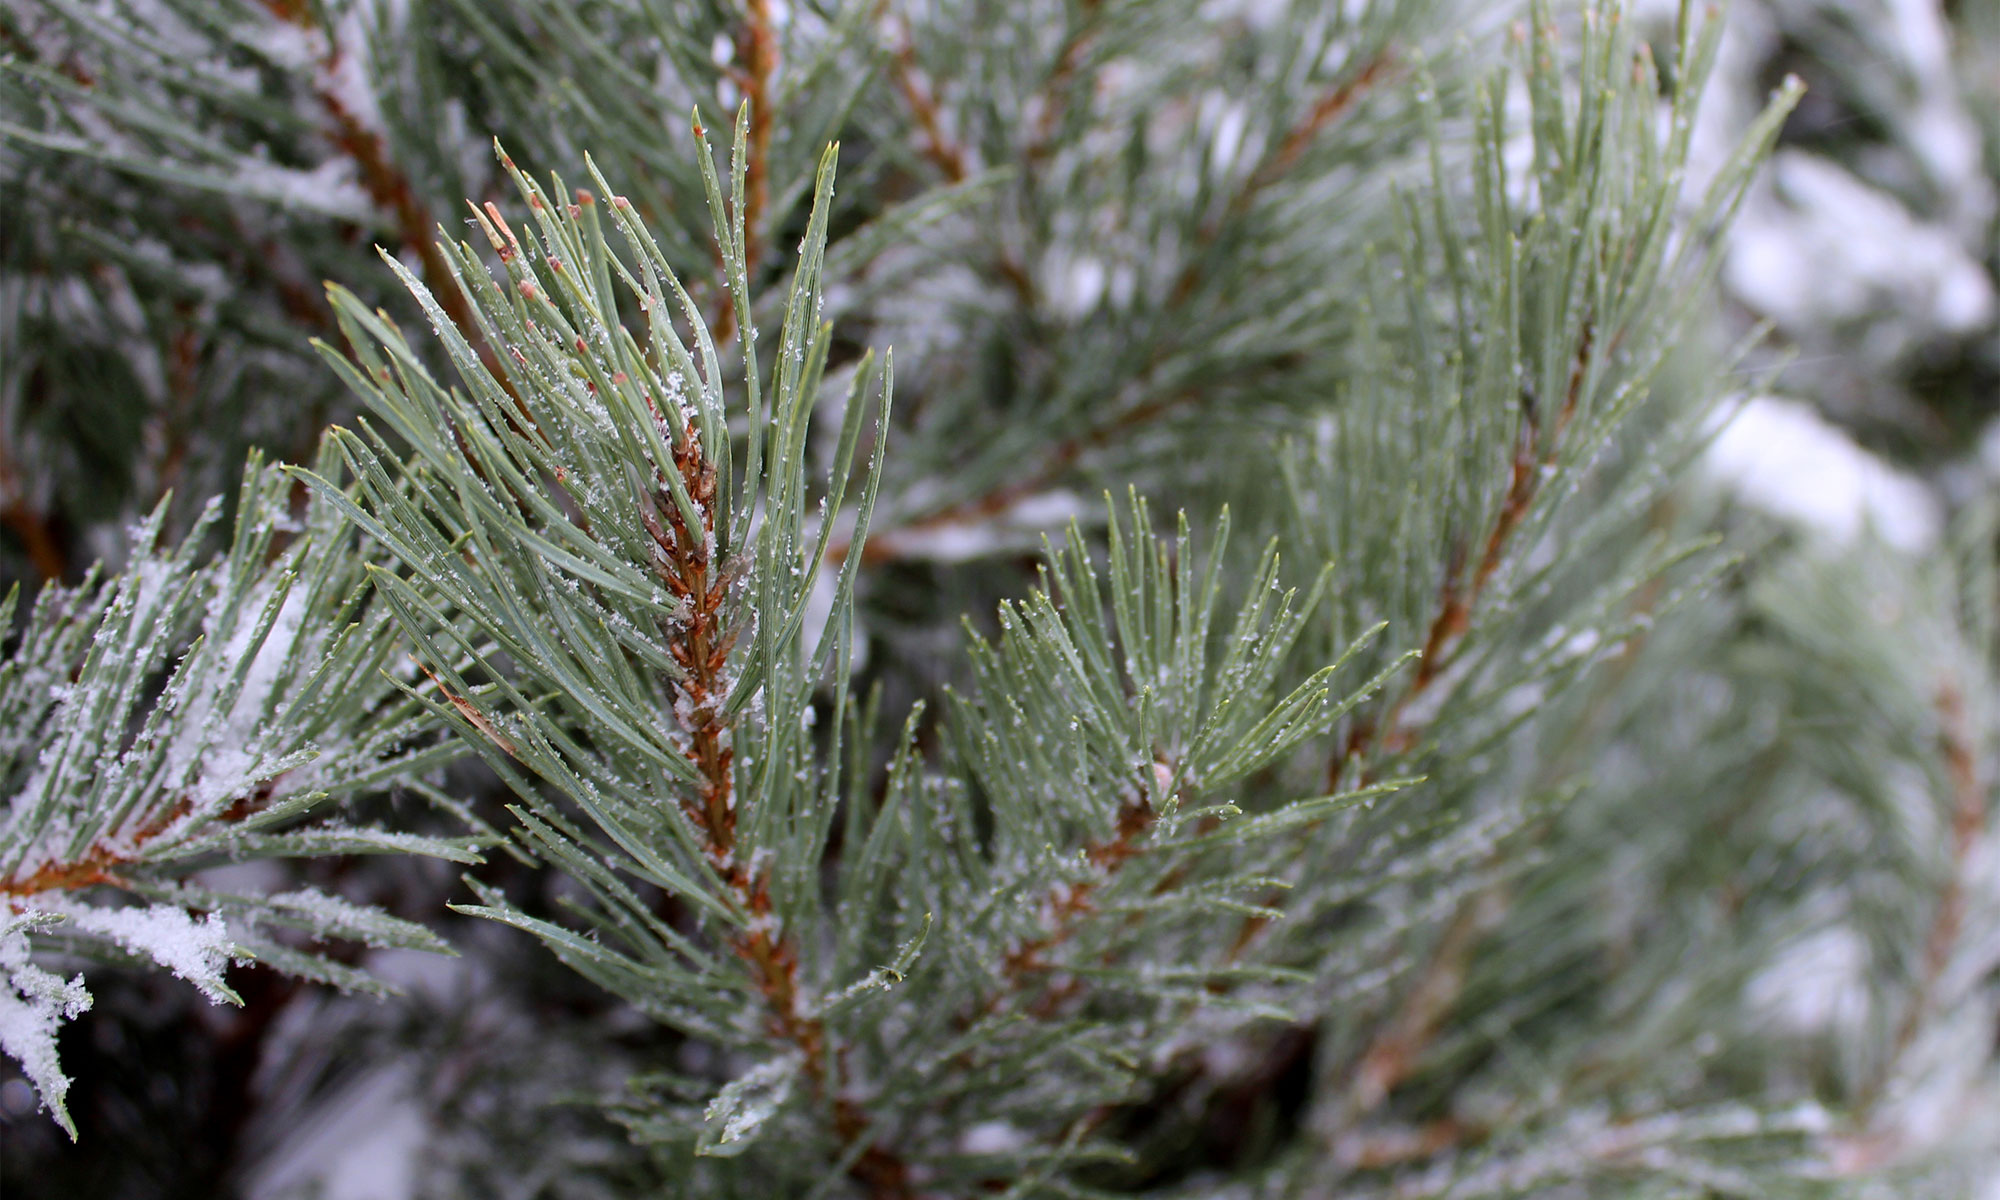 Scots pine branches.